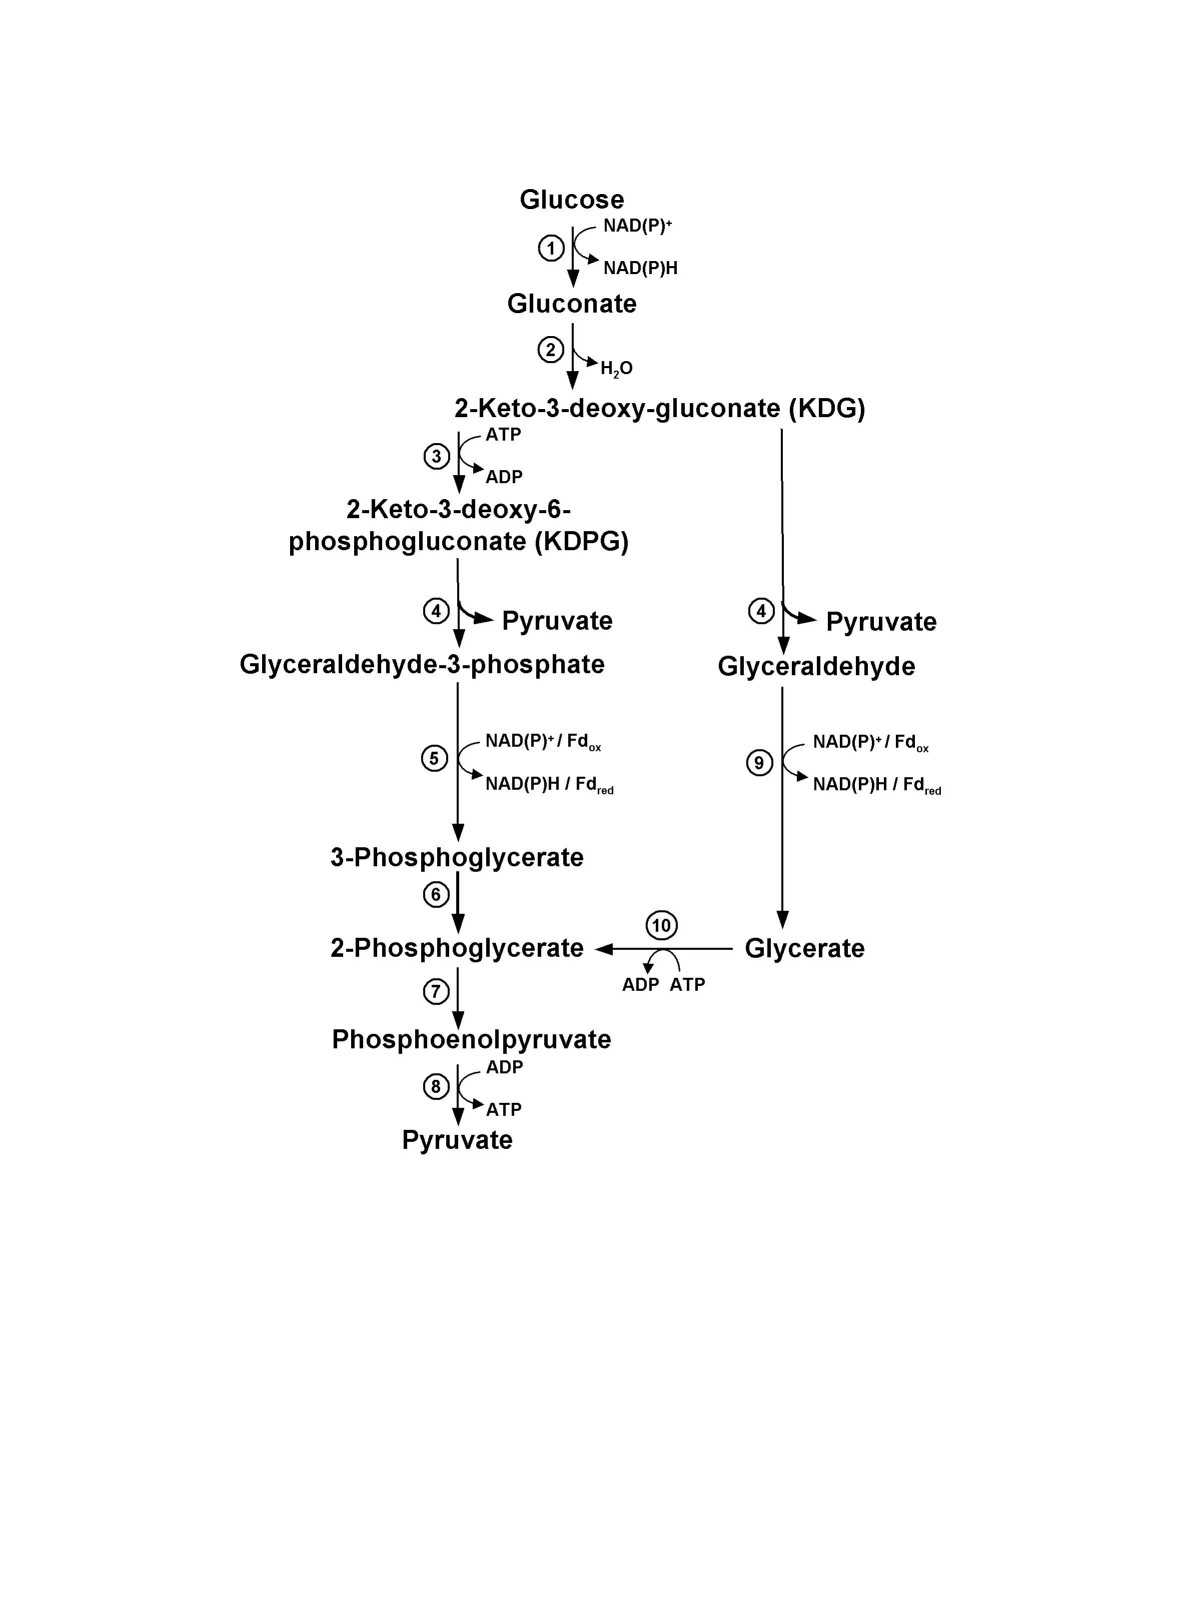 http://static-content.springer.com/image/art%3A10.1186%2F1471-2164-8-301/MediaObjects/12864_2007_Article_1014_Fig1_HTML.jpg